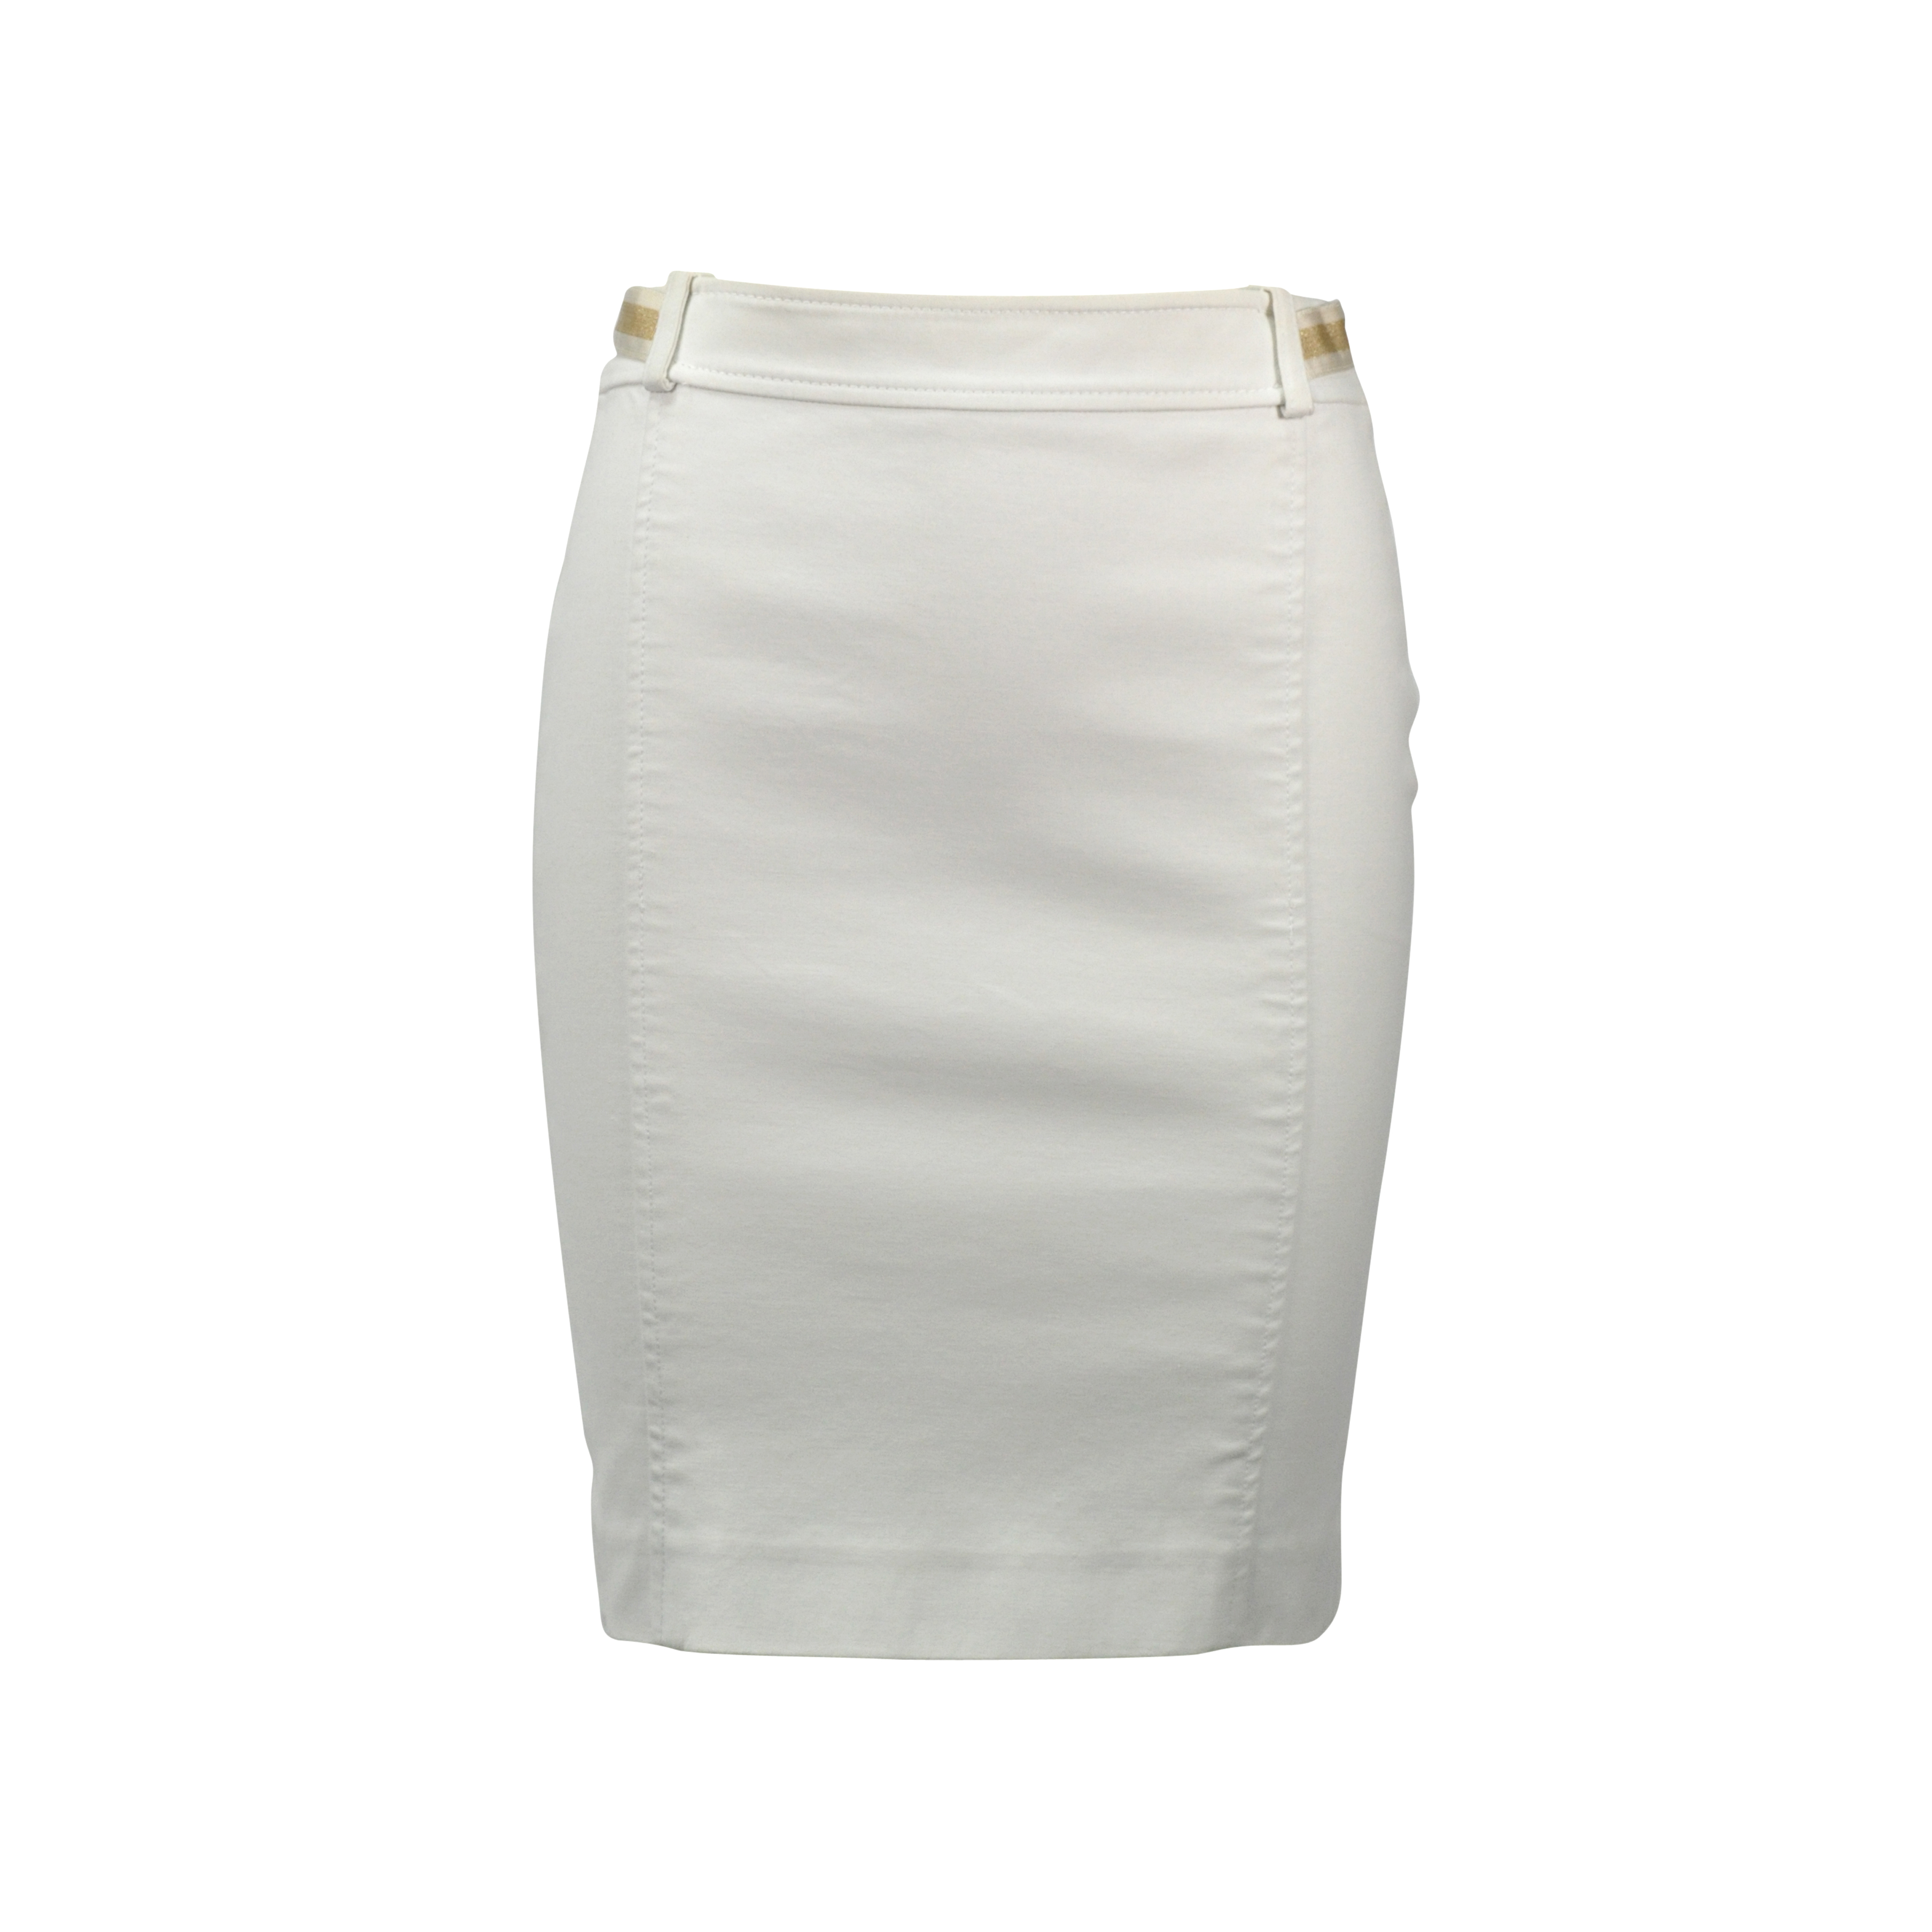 5bac6b83697 Authentic Second Hand Gucci Pencil Skirt with Waistband Detail (PSS-246-00181)